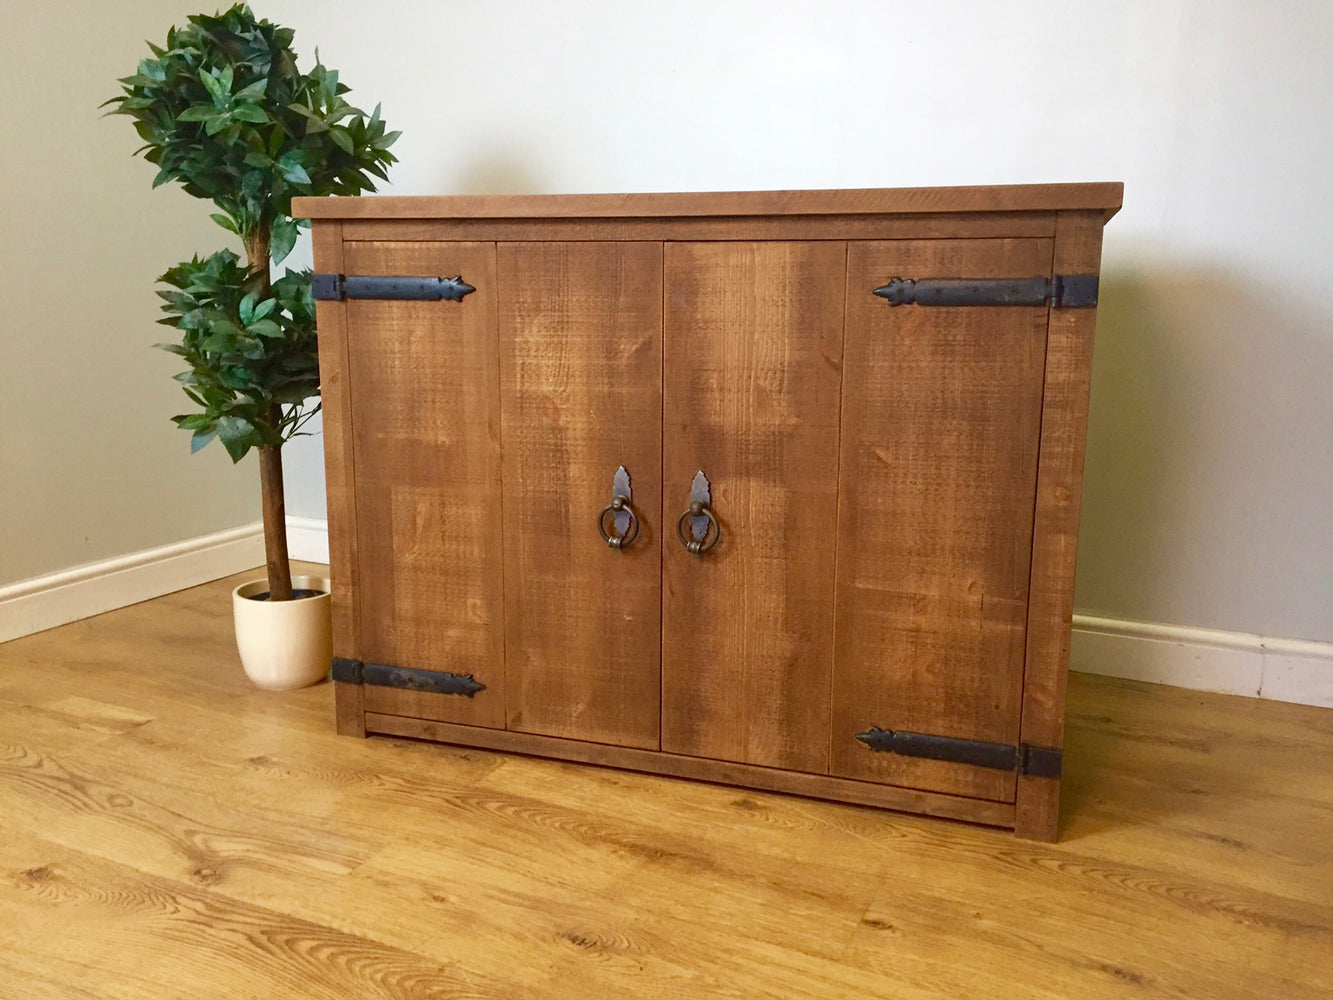 The Authentic Waxed Two-Door Sideboard